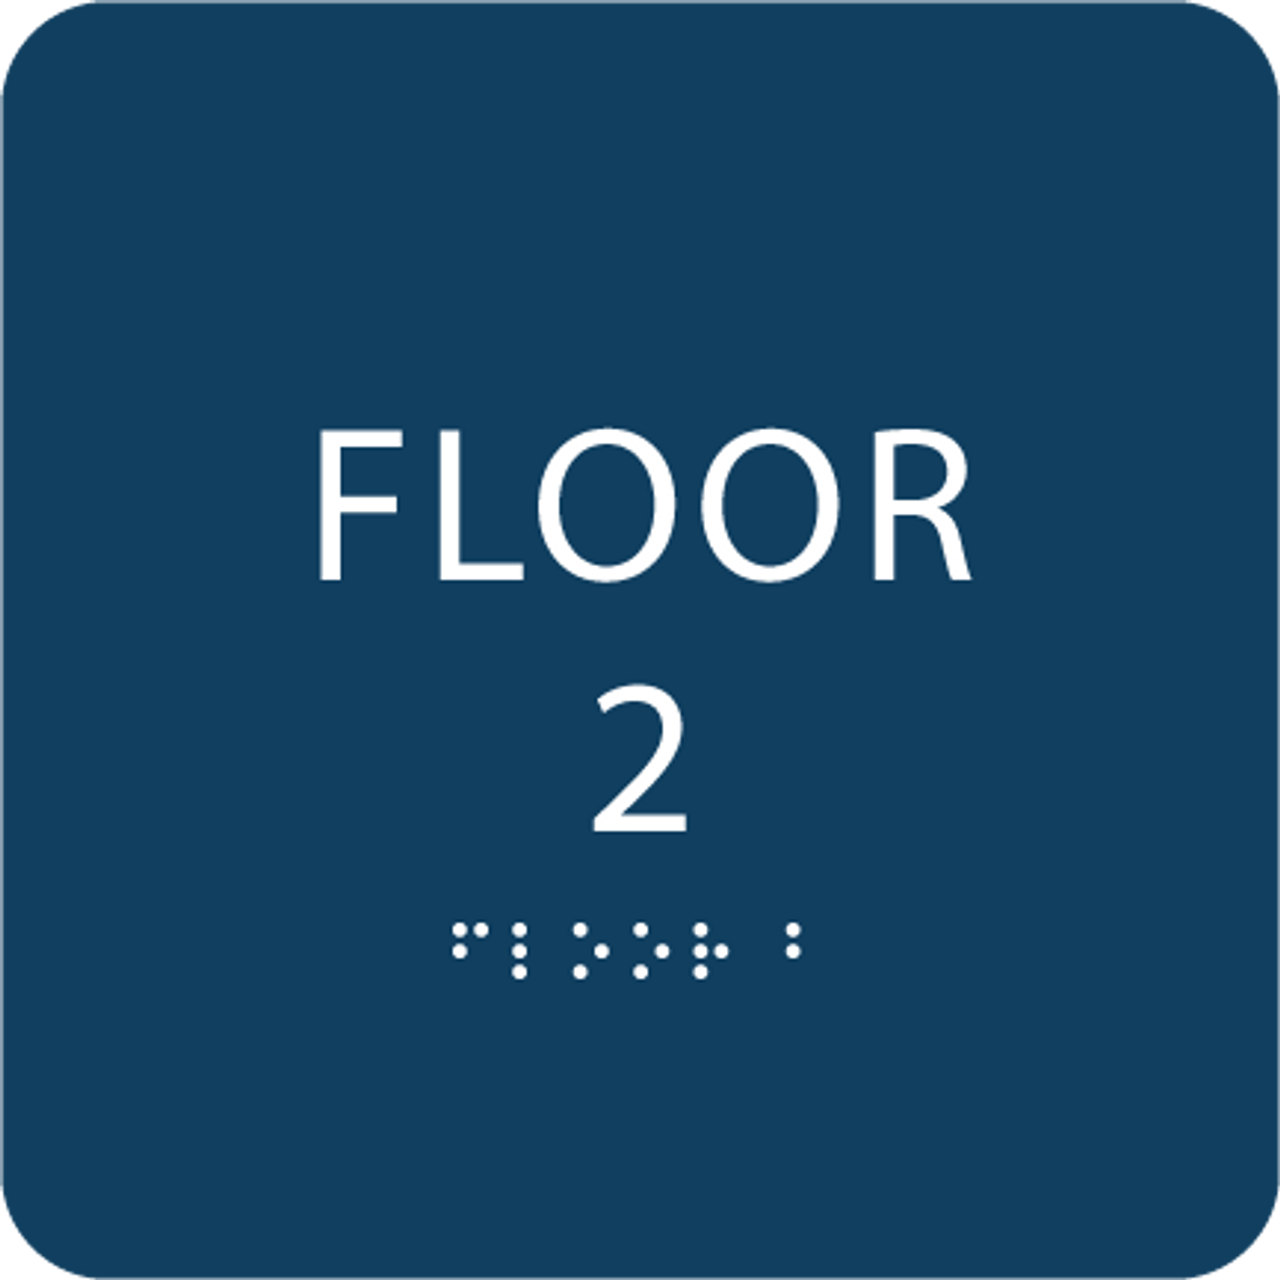 Dark Blue Floor 2 Identification Sign